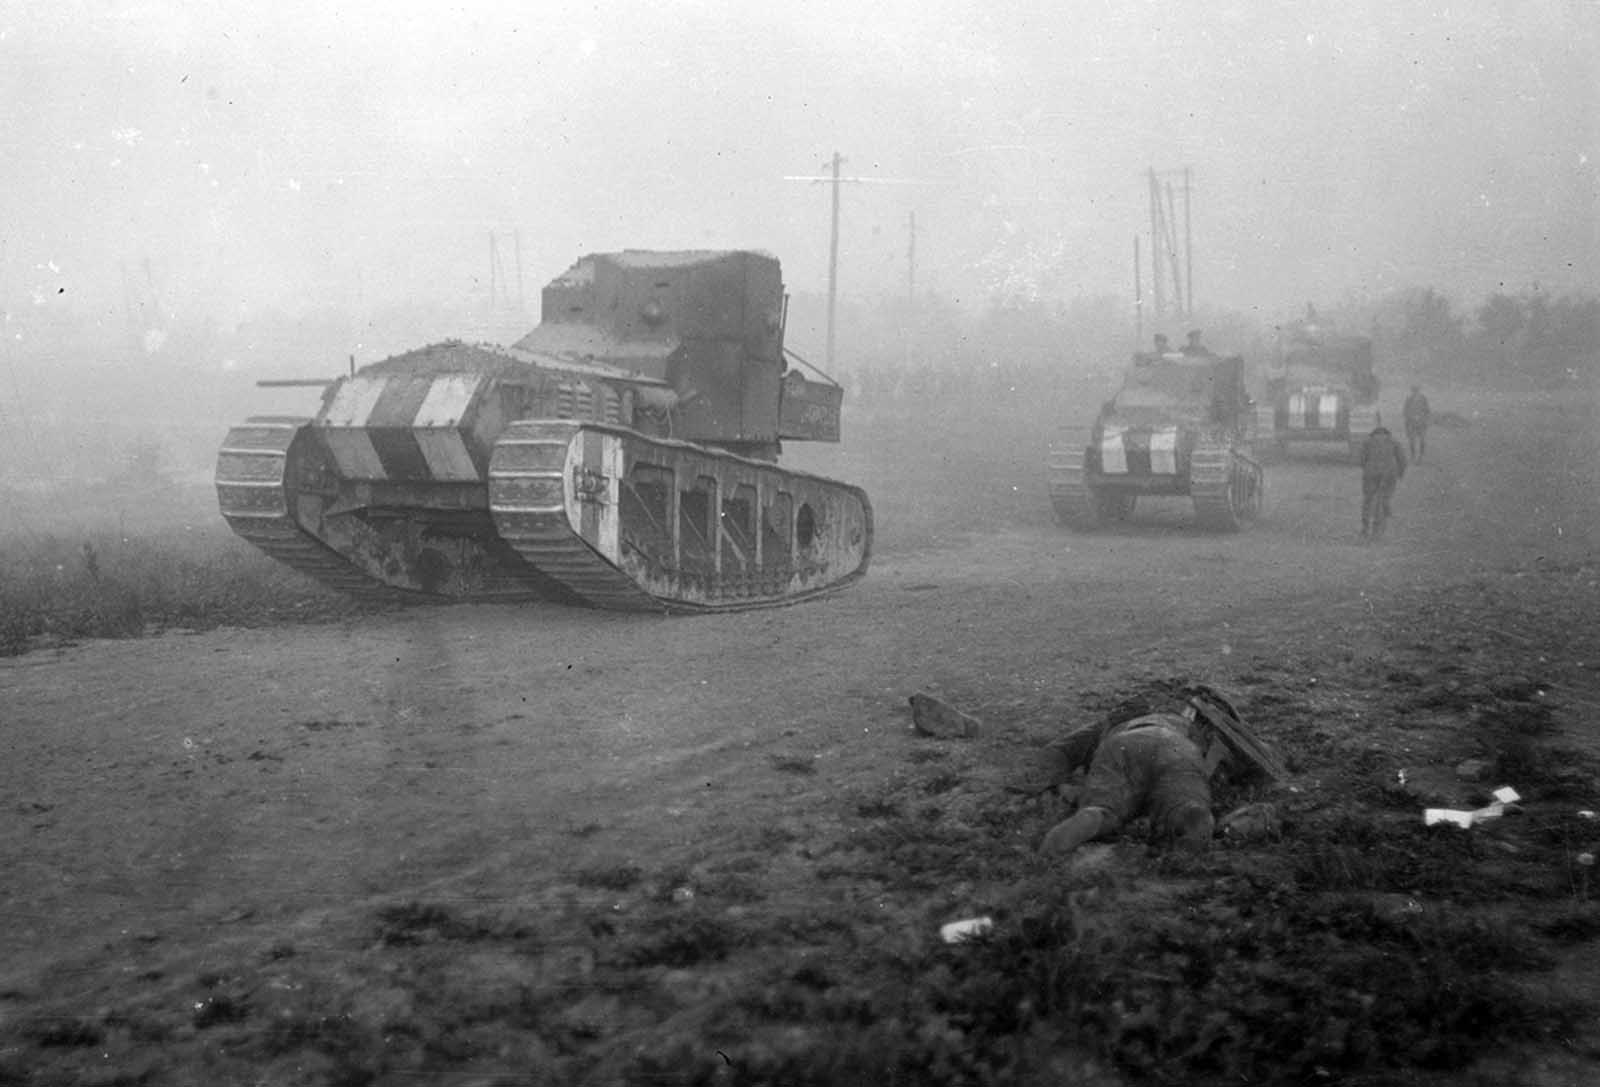 British Medium Mark A Whippet tanks advance past the body of a dead soldier, moving to an attack along a road near Achiet-le-Petit, France, on August 22, 1918. The Whippets were faster and lighter than previously deployed British heavy tanks.